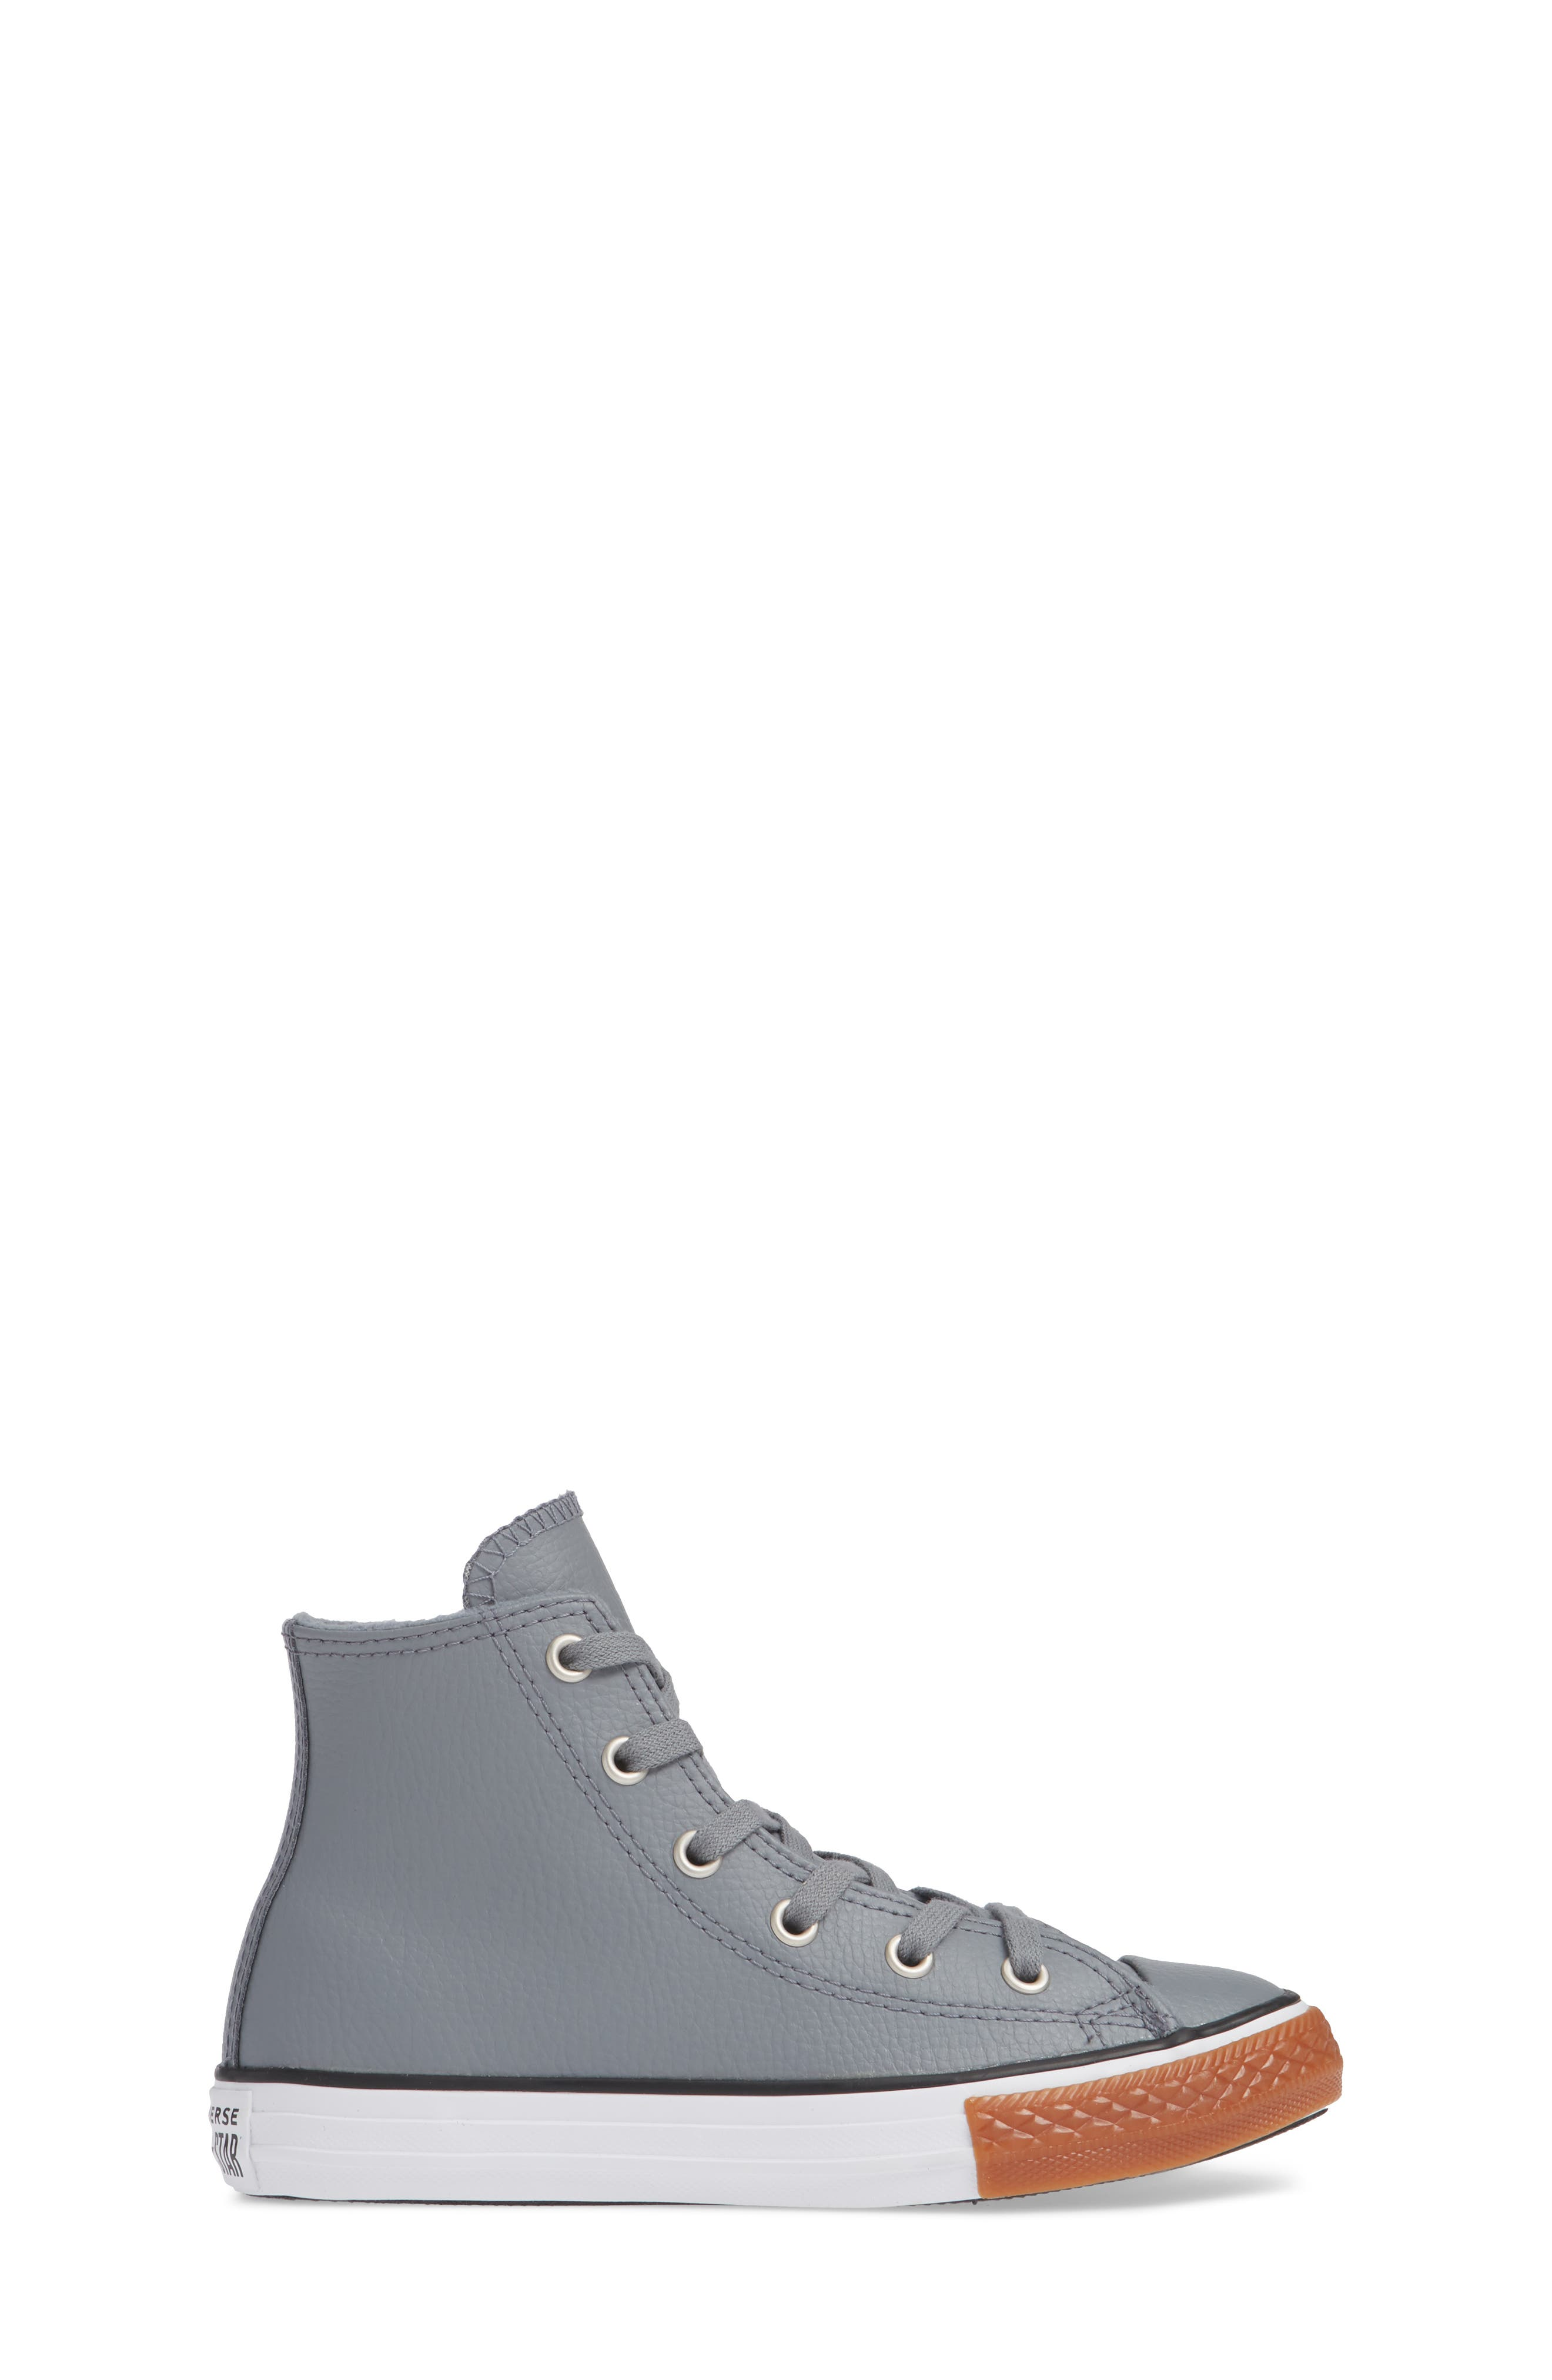 Chuck Taylor<sup>®</sup> All Star<sup>®</sup> No Gum In Class Leather High Top Sneaker,                             Alternate thumbnail 3, color,                             039